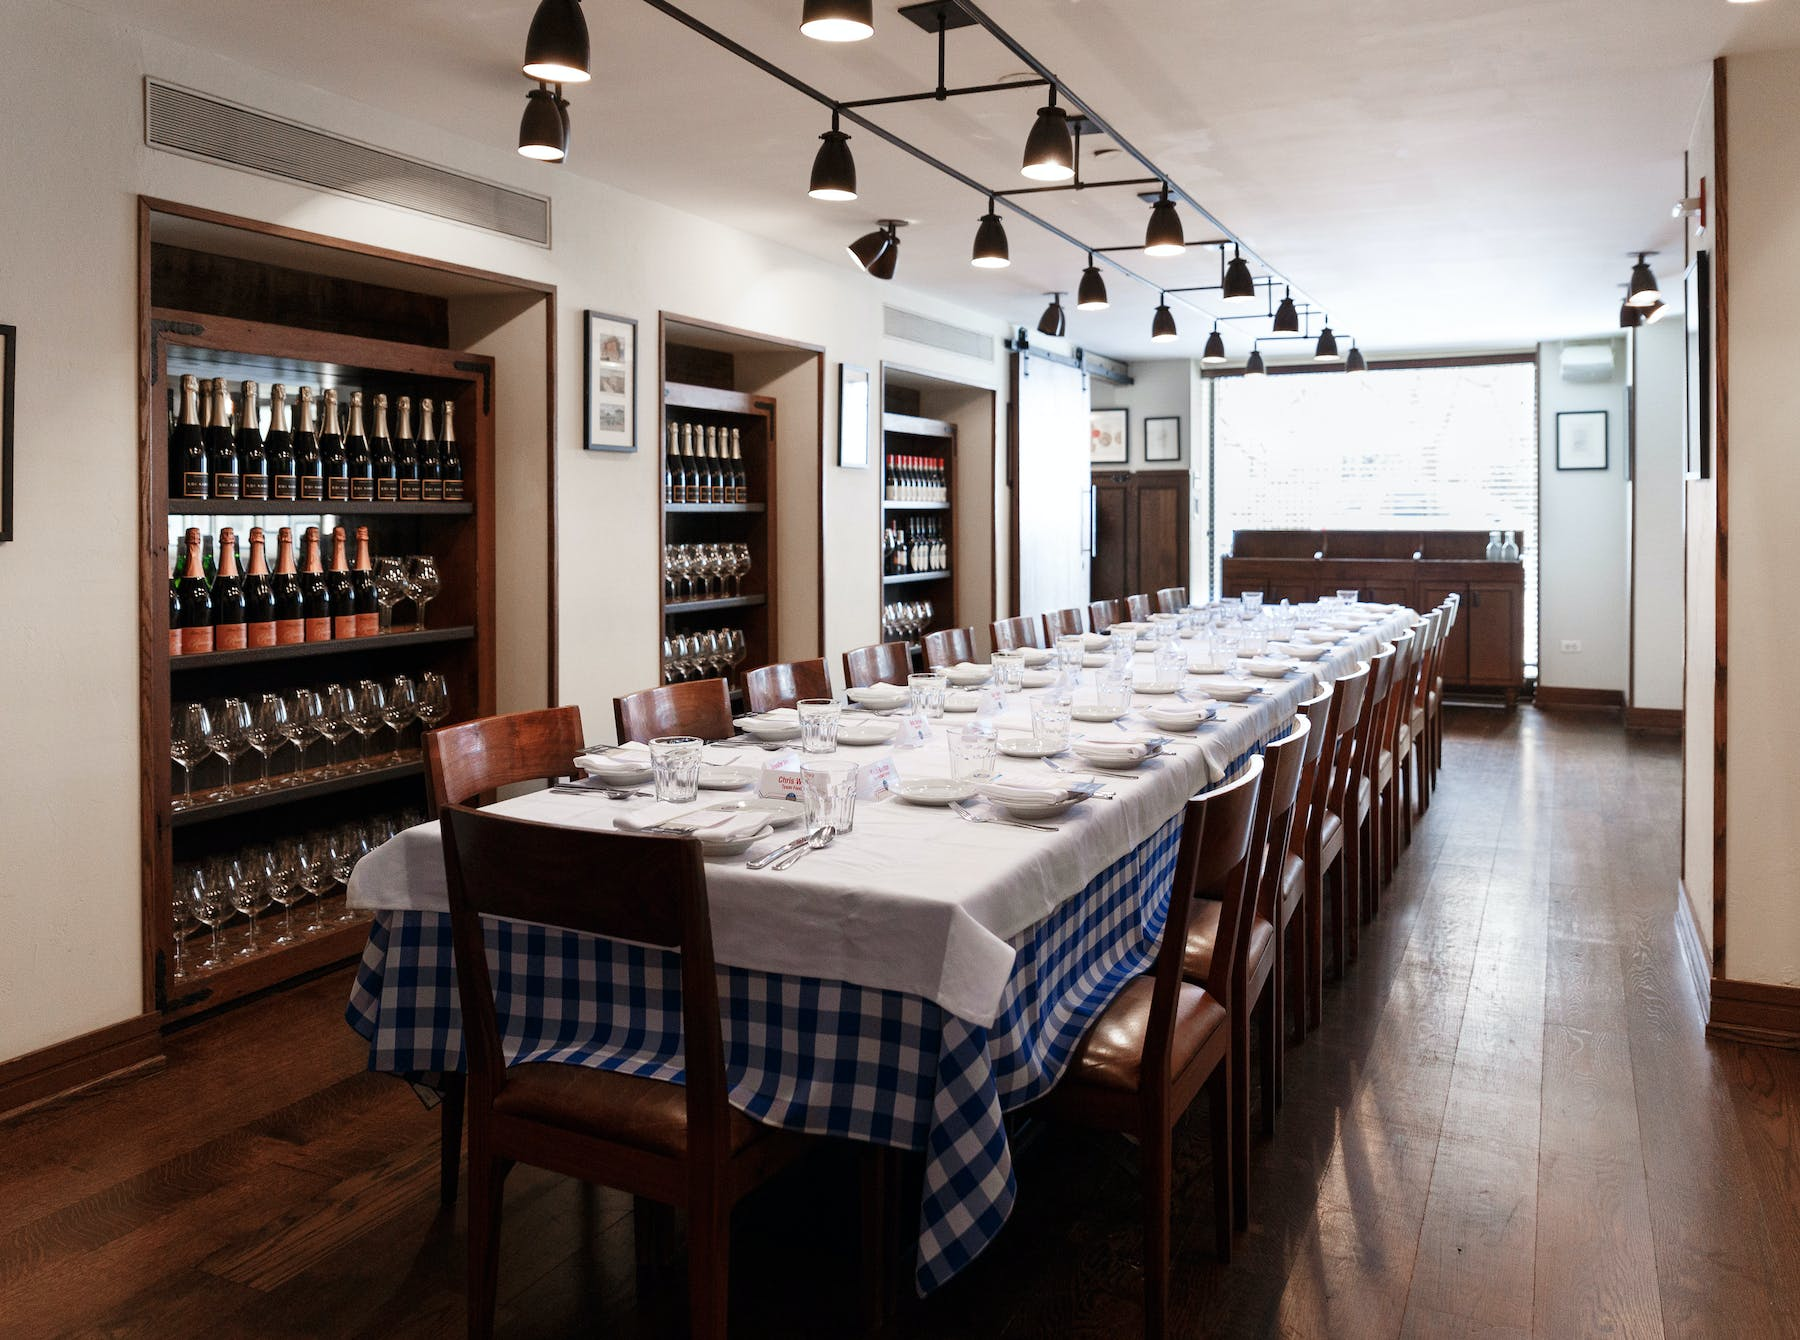 a view of the empty Maialino private dining room, overlooking Gramercy Park, with a single table that seats 24